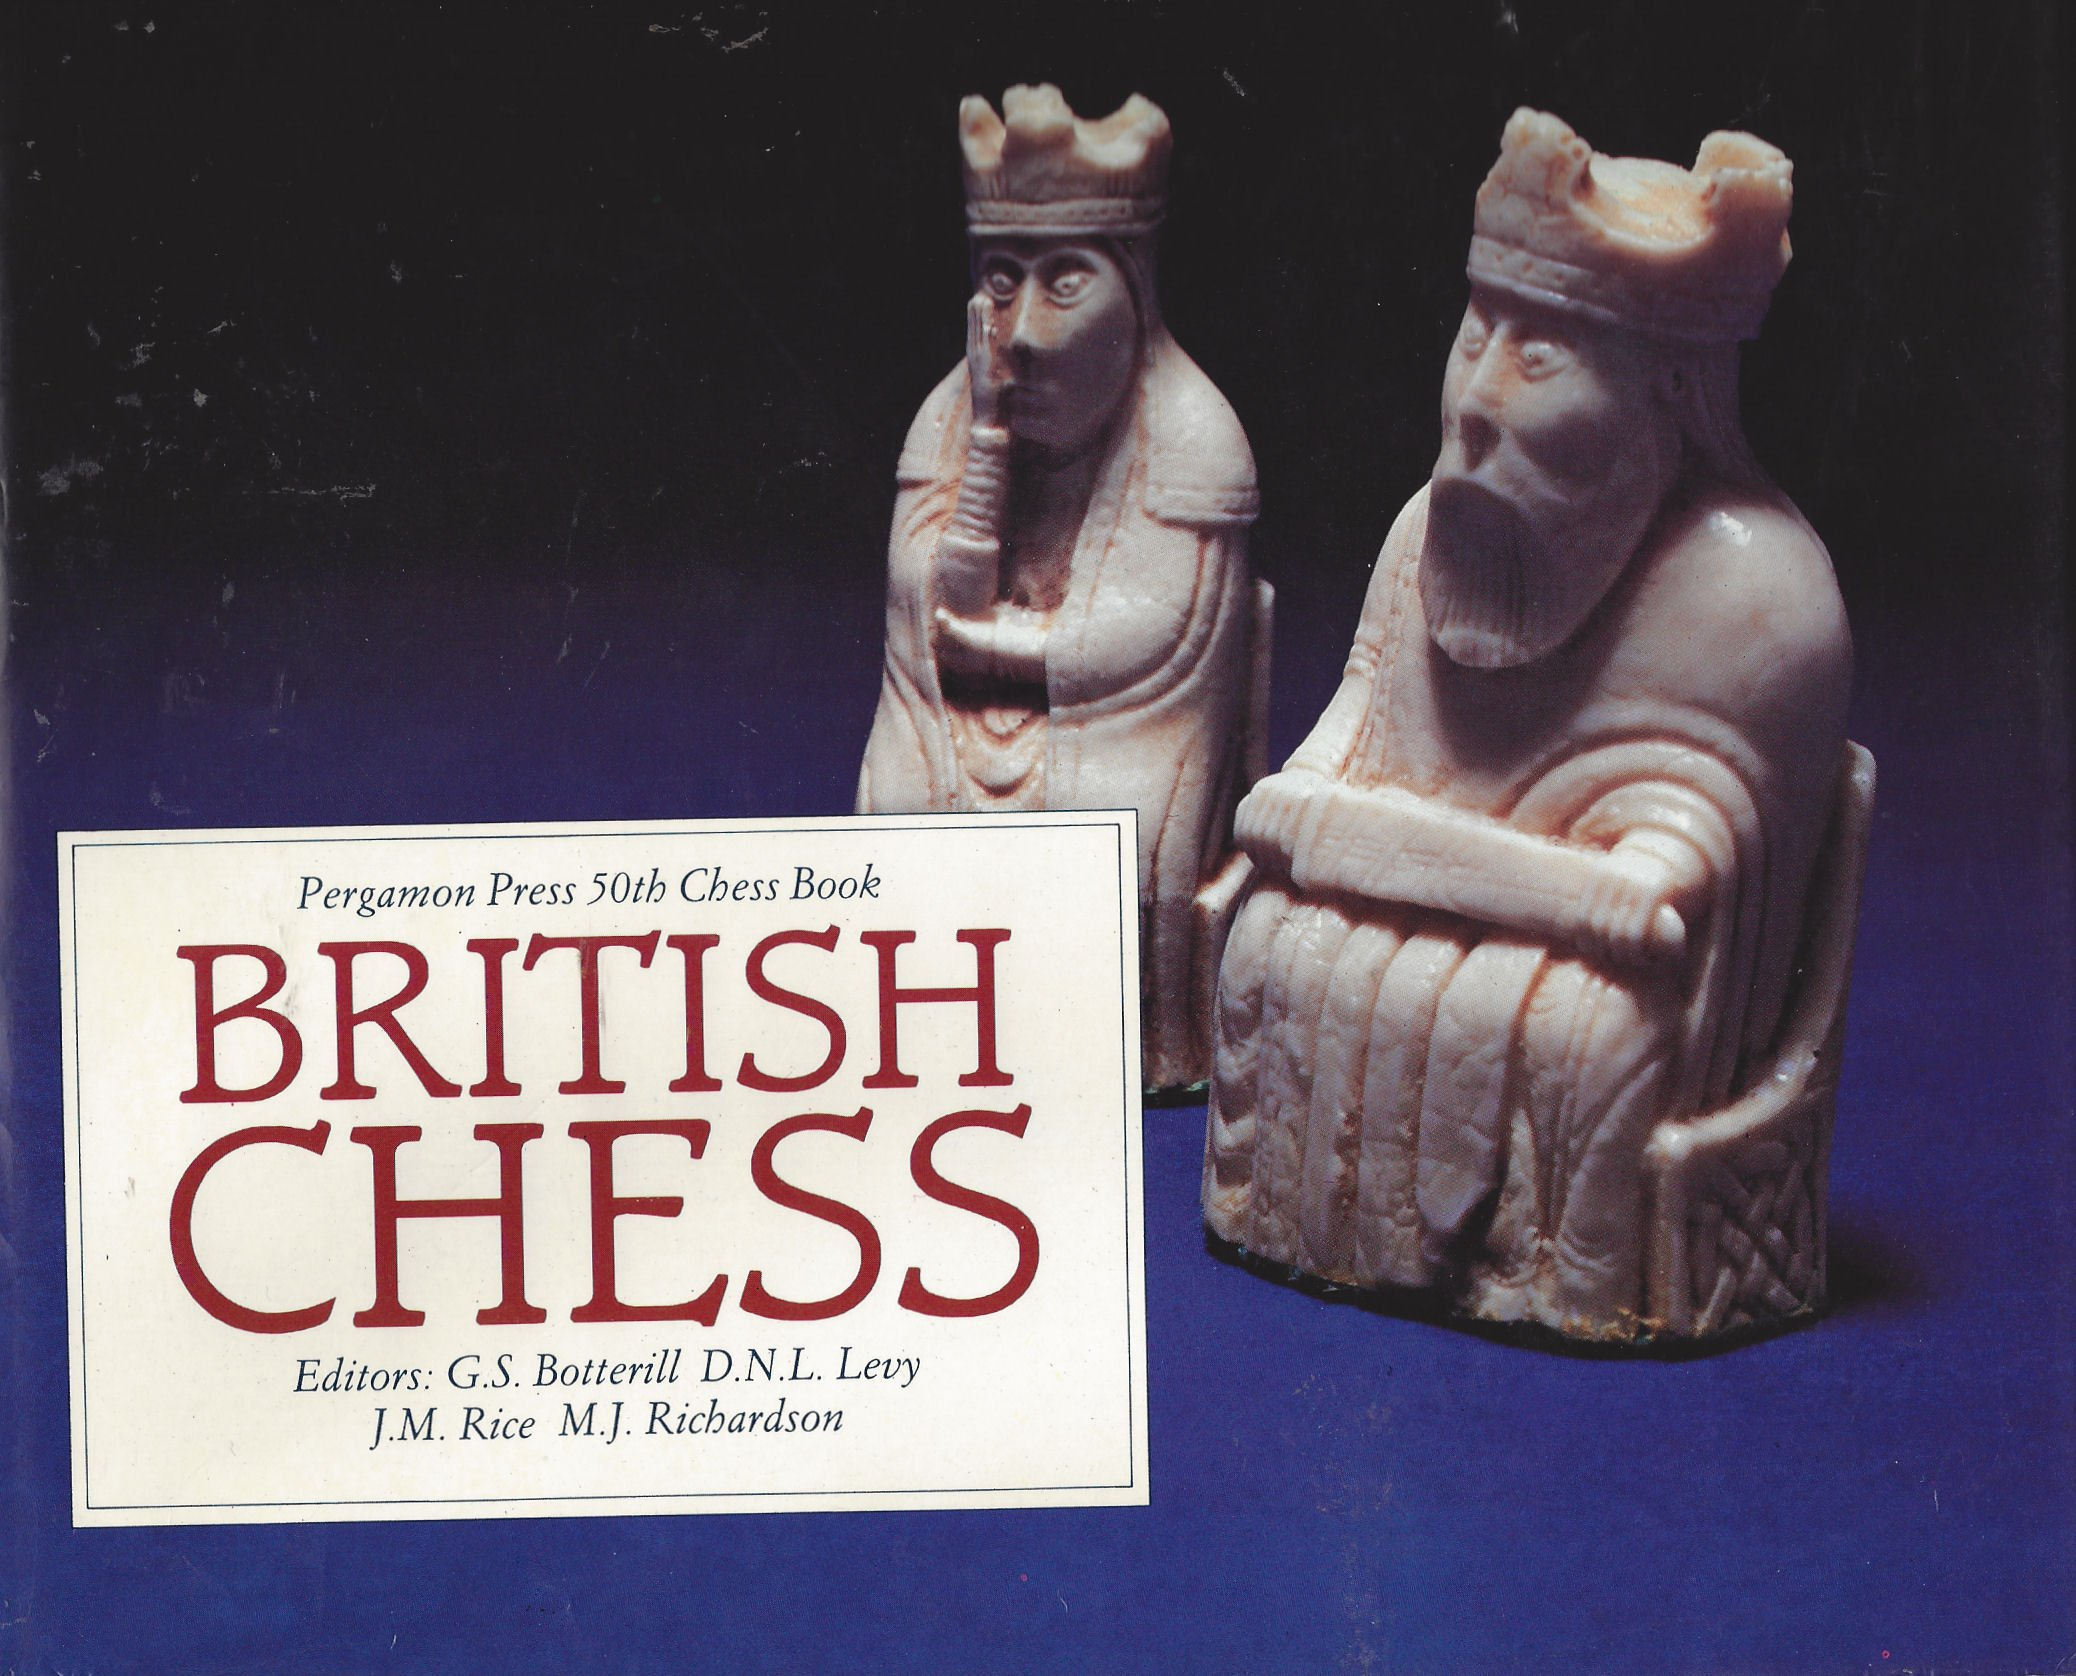 British Chess, Pergamon Press, 1983. Editors : GS Botterill, DNL Levy, JM Rice and MJ Richardson